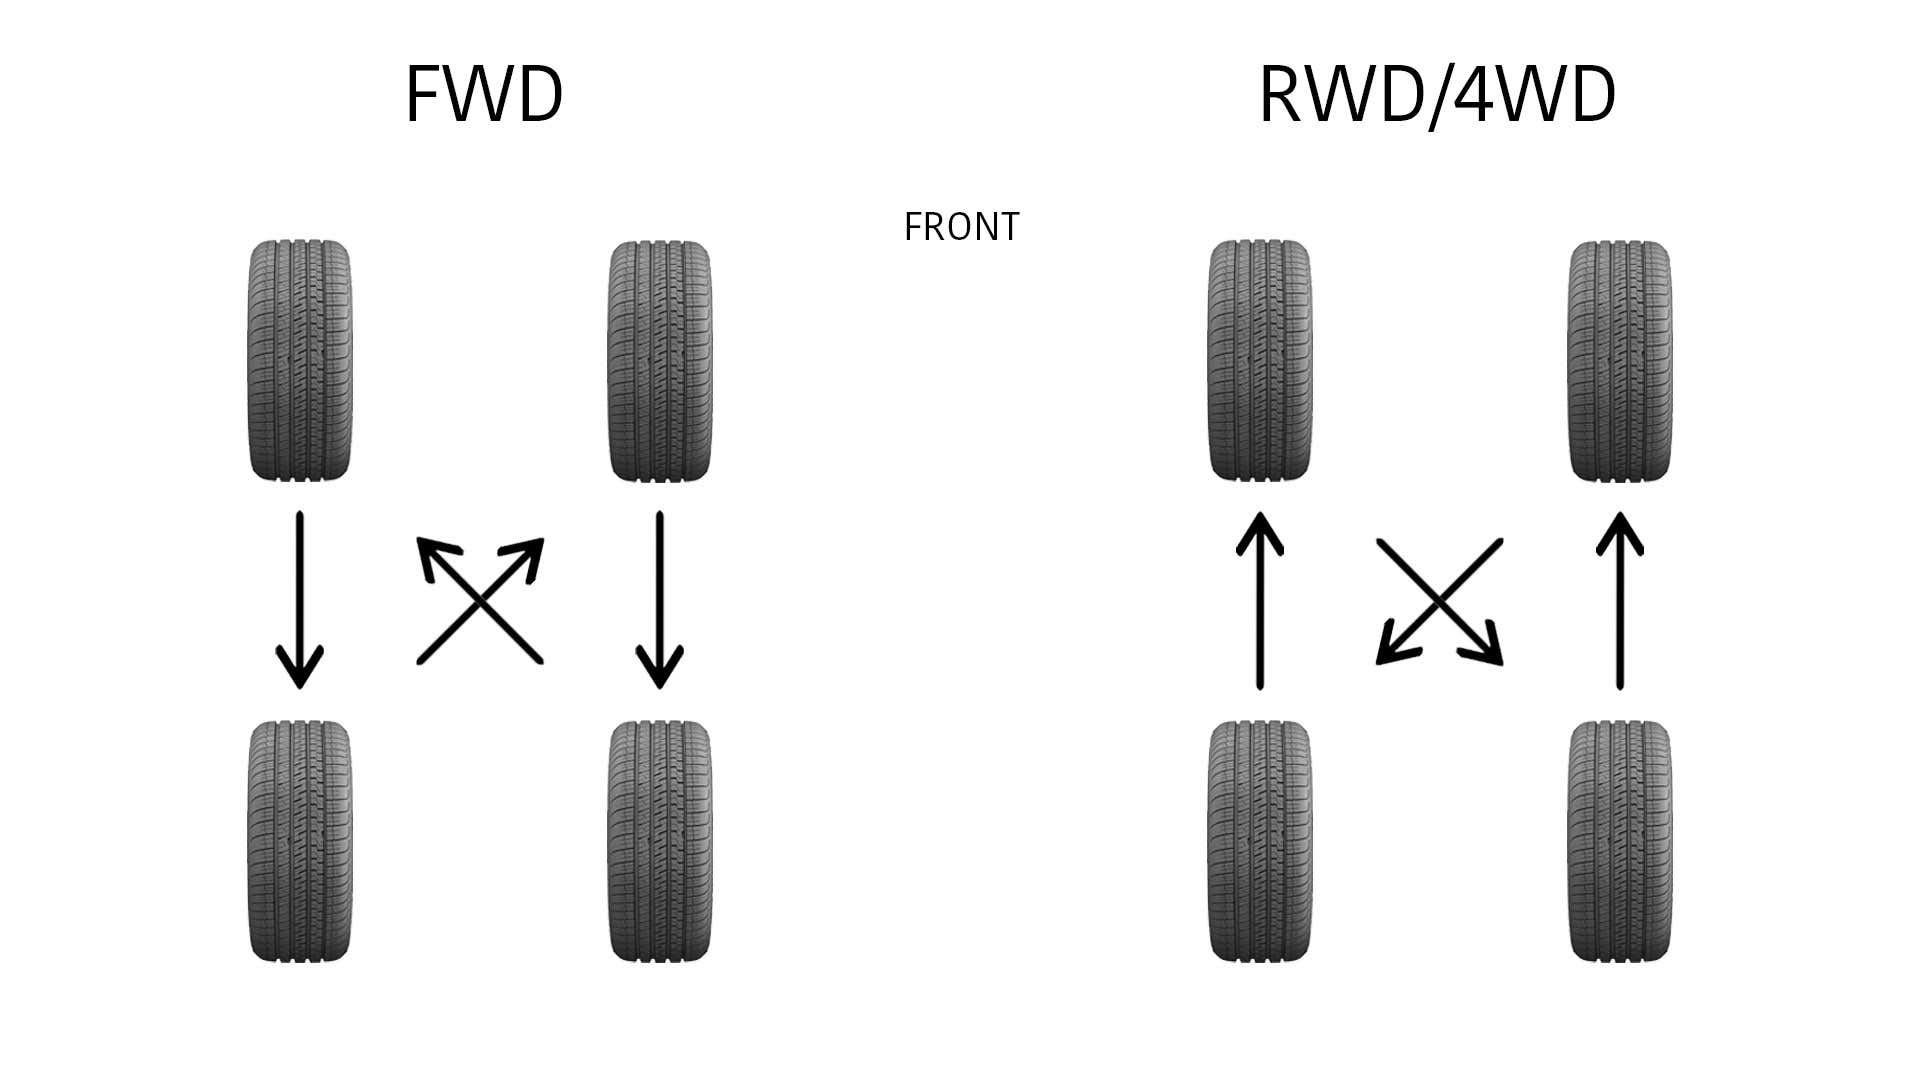 On FWD cars, the front tires move back, and on RWD cars, the rear tires move forward.